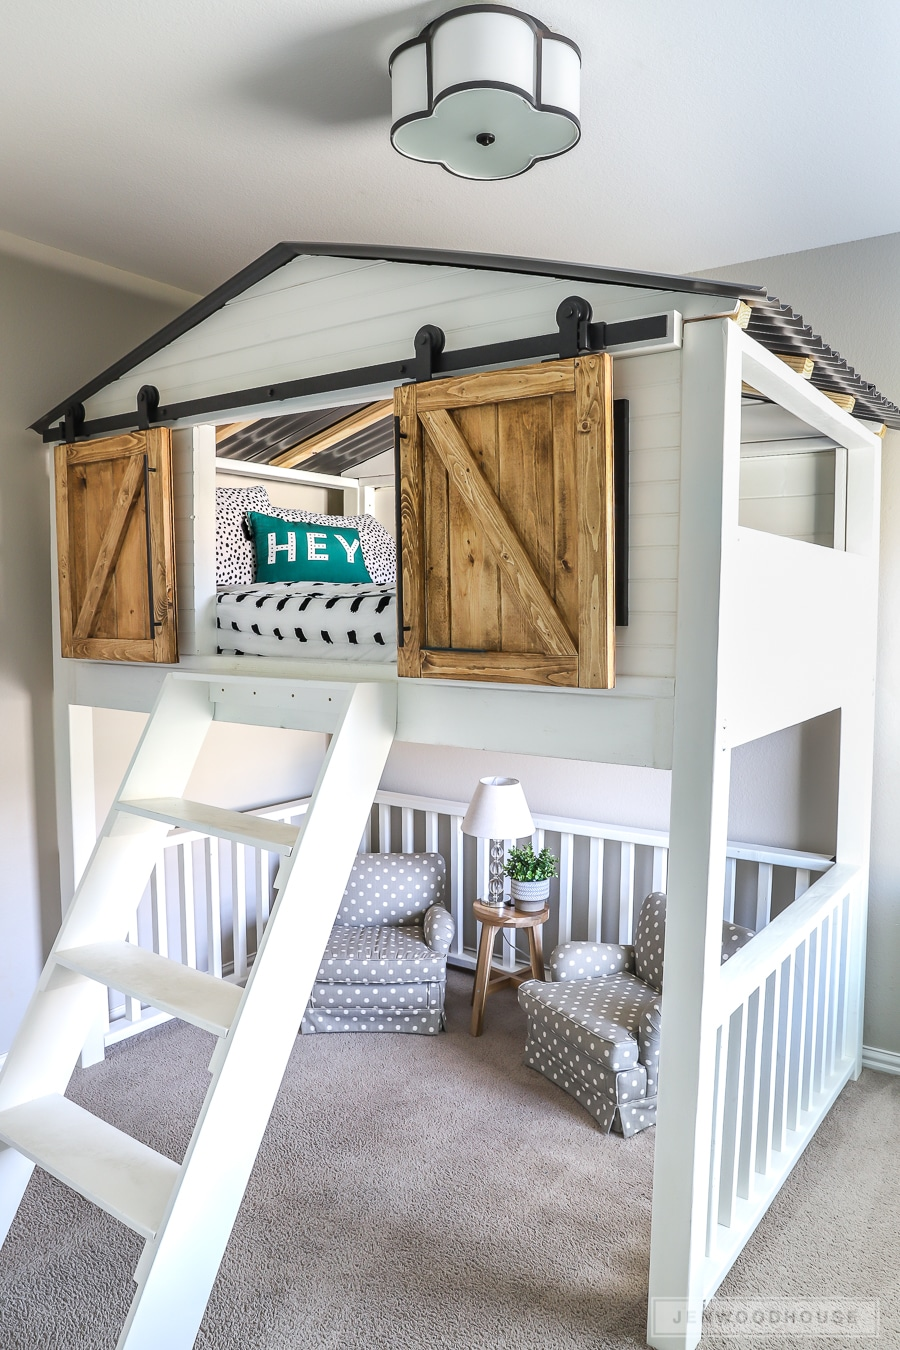 How To Build A DIY Sliding Barn Door Loft Bed